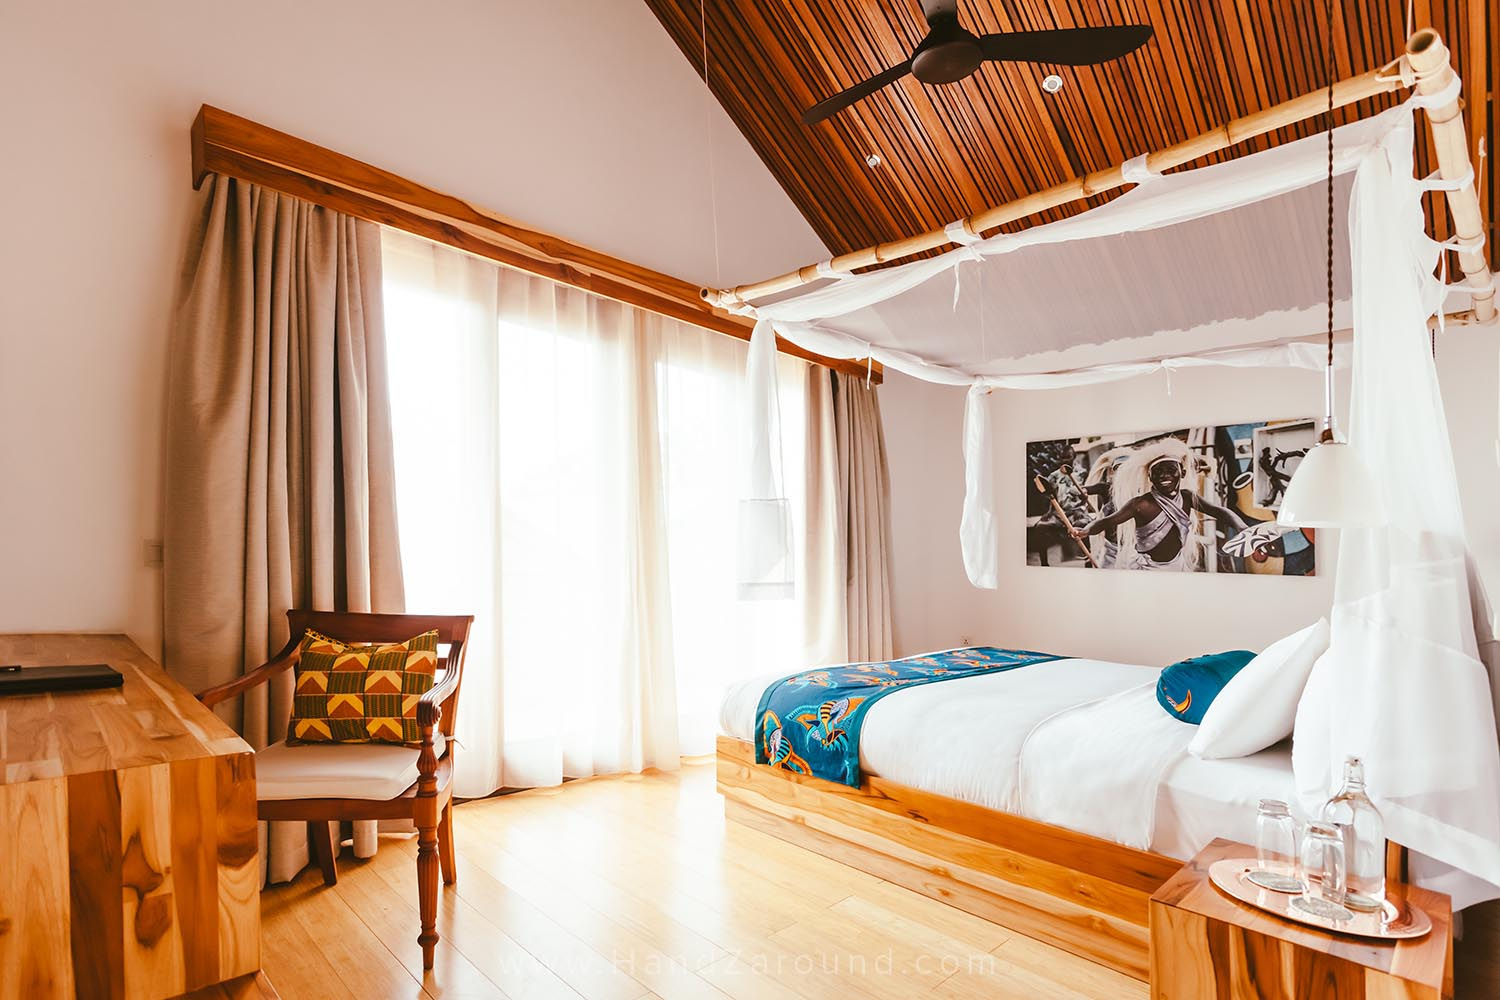 0007_Where to stay in Kigali Retreat Boutique Luxury Hotel Rwanda HandZaround City Guide.jpg